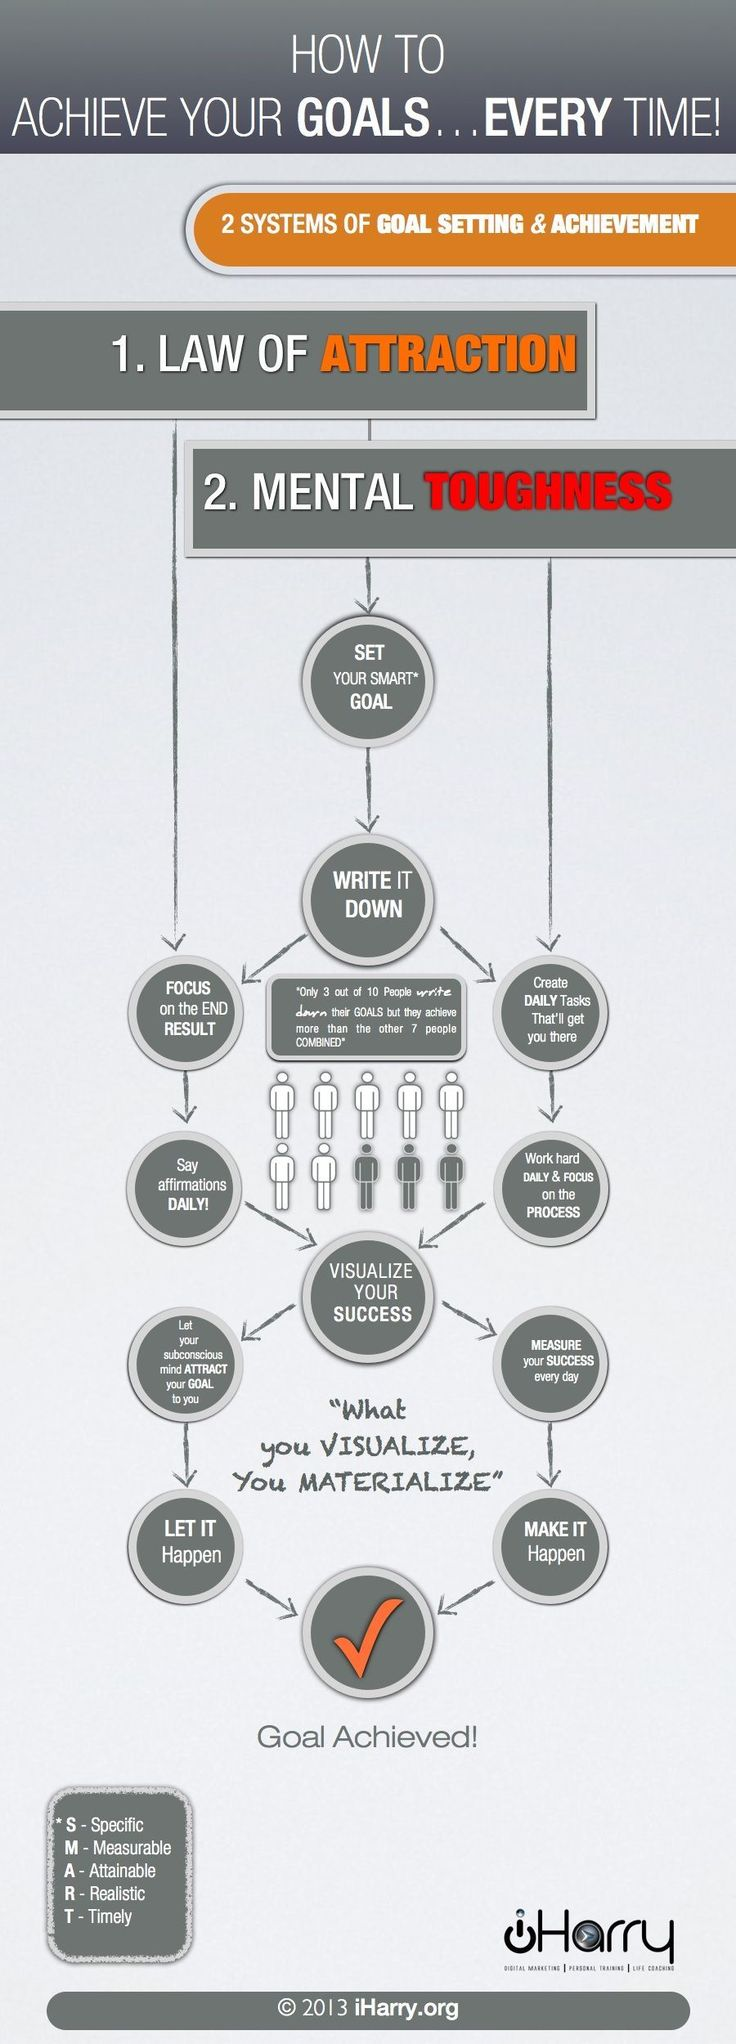 Do you have a dream but you're afraid your personality or dedication won't take you there? This flowchart will help you achieve your goals every time.